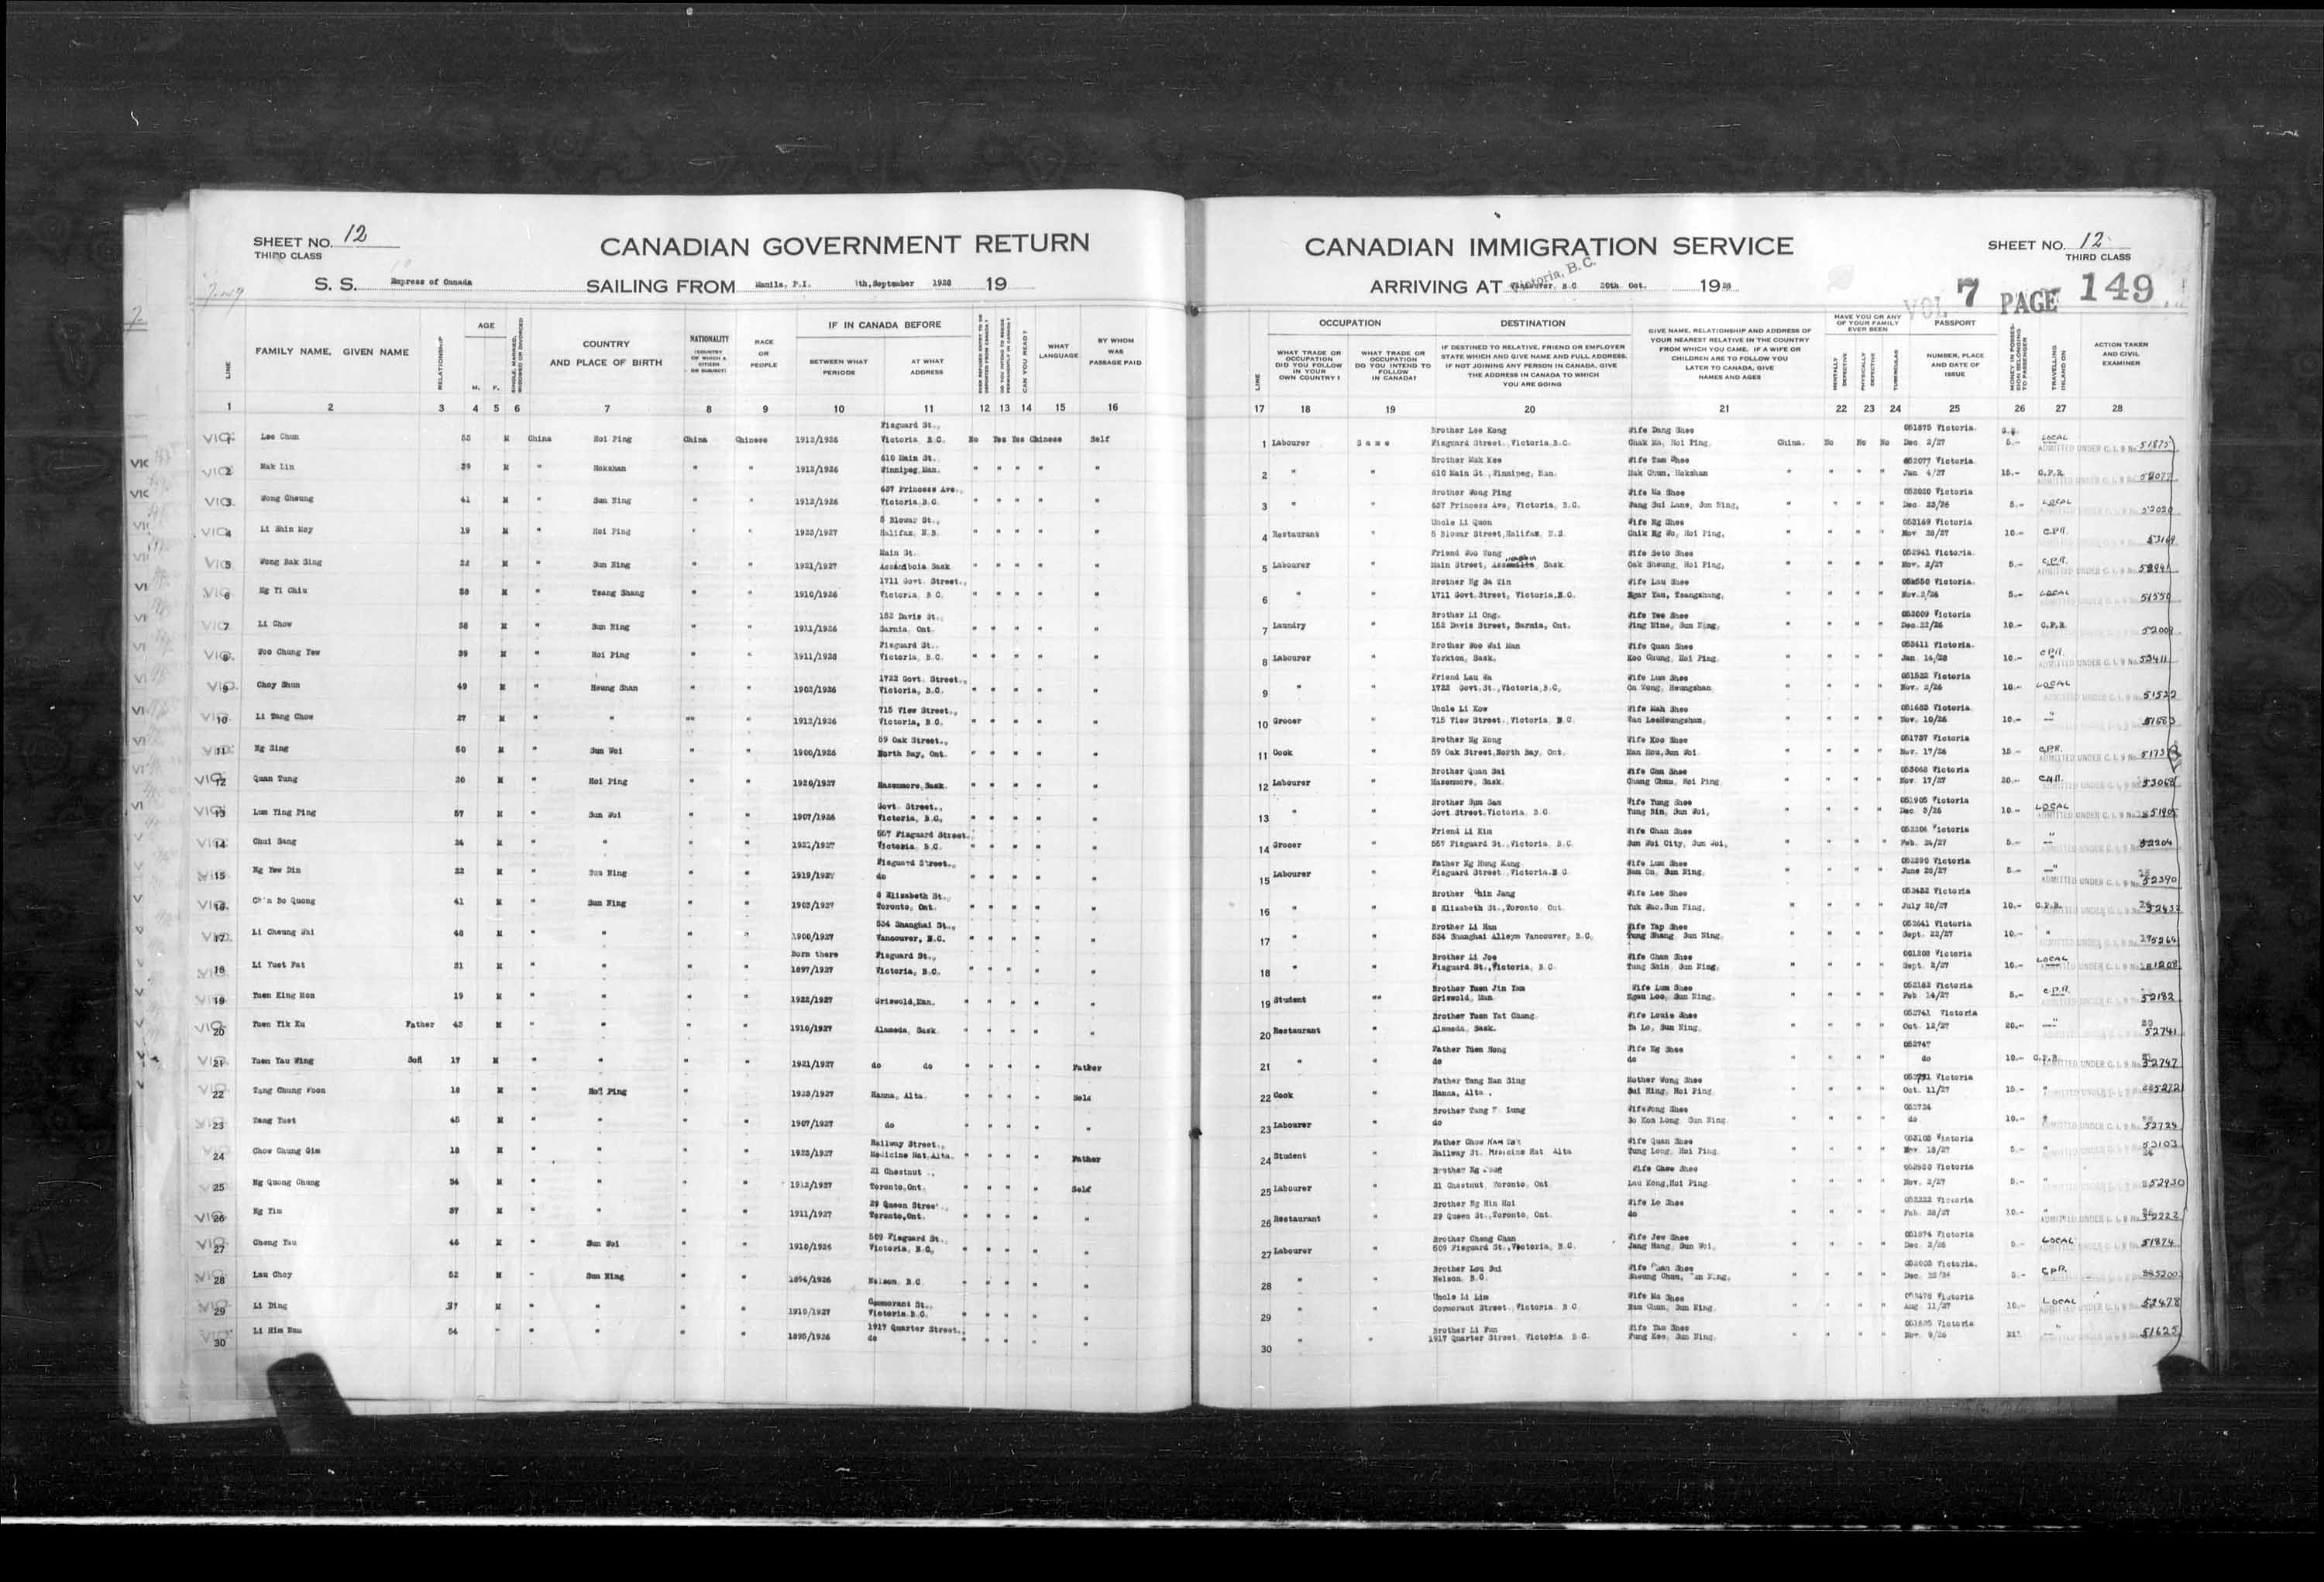 Title: Passenger Lists: Vancouver and Victoria (1925-1935) - Mikan Number: 161347 - Microform: t-14892